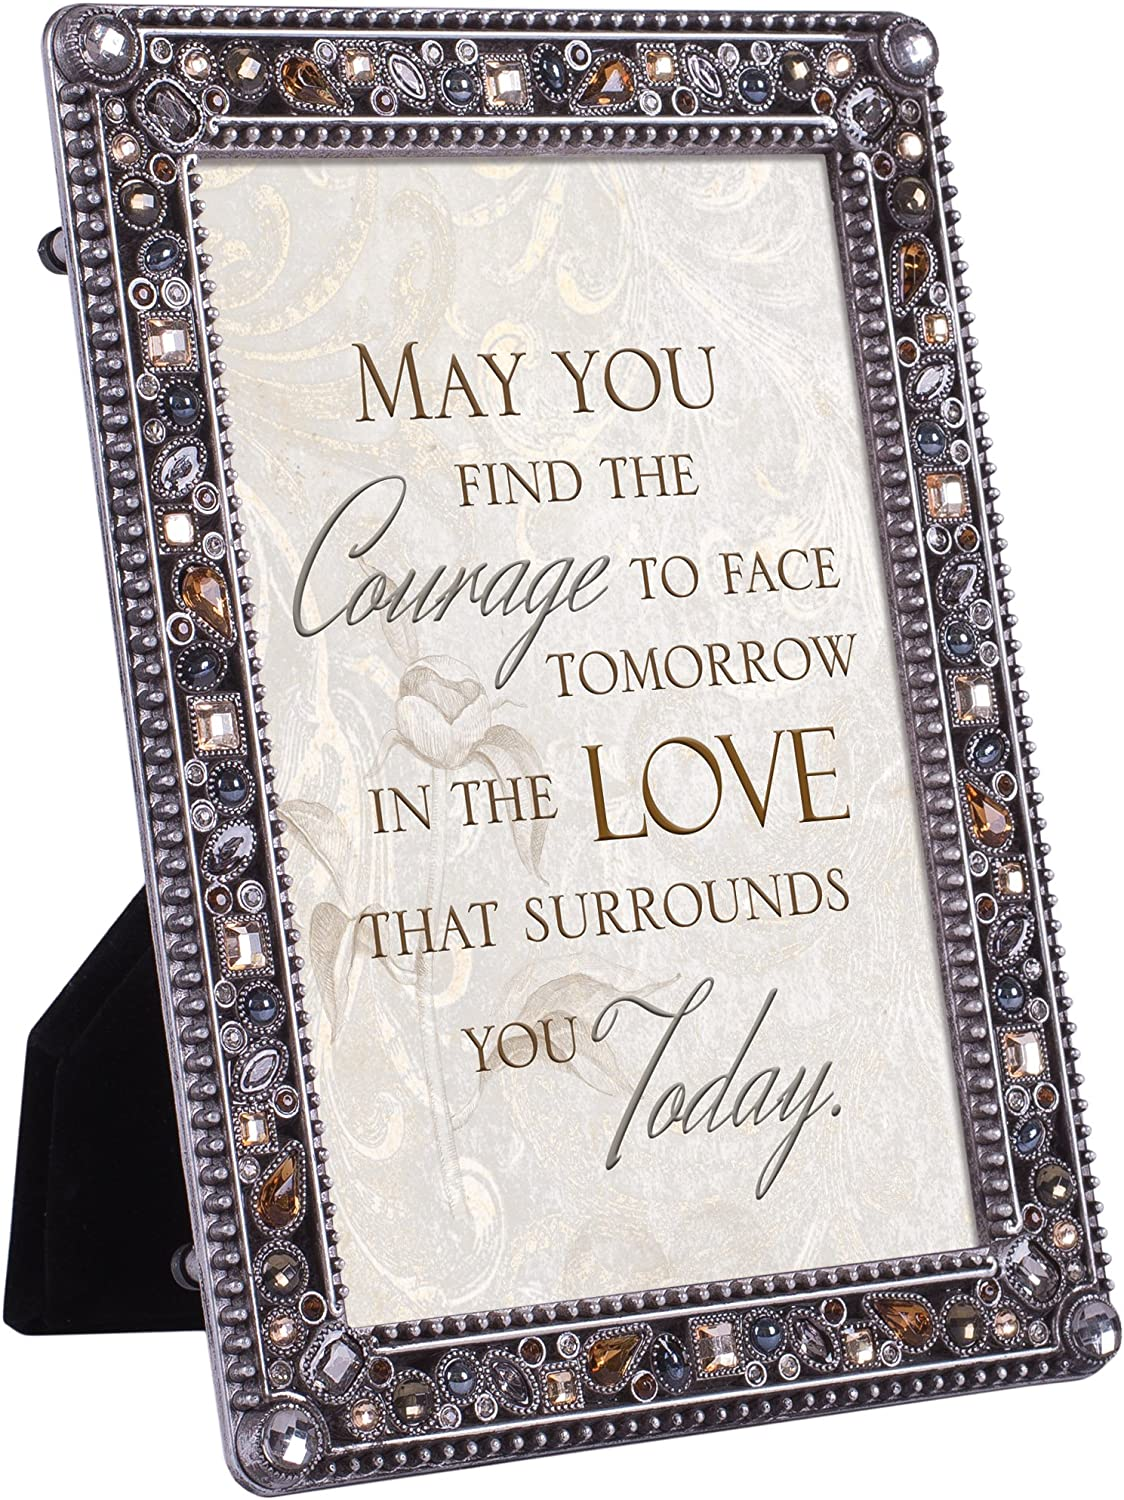 Cottage Garden Courage Tomorrow Love Surrounds Jeweled Pewter Finish 4x6 Photo Frame Plaque